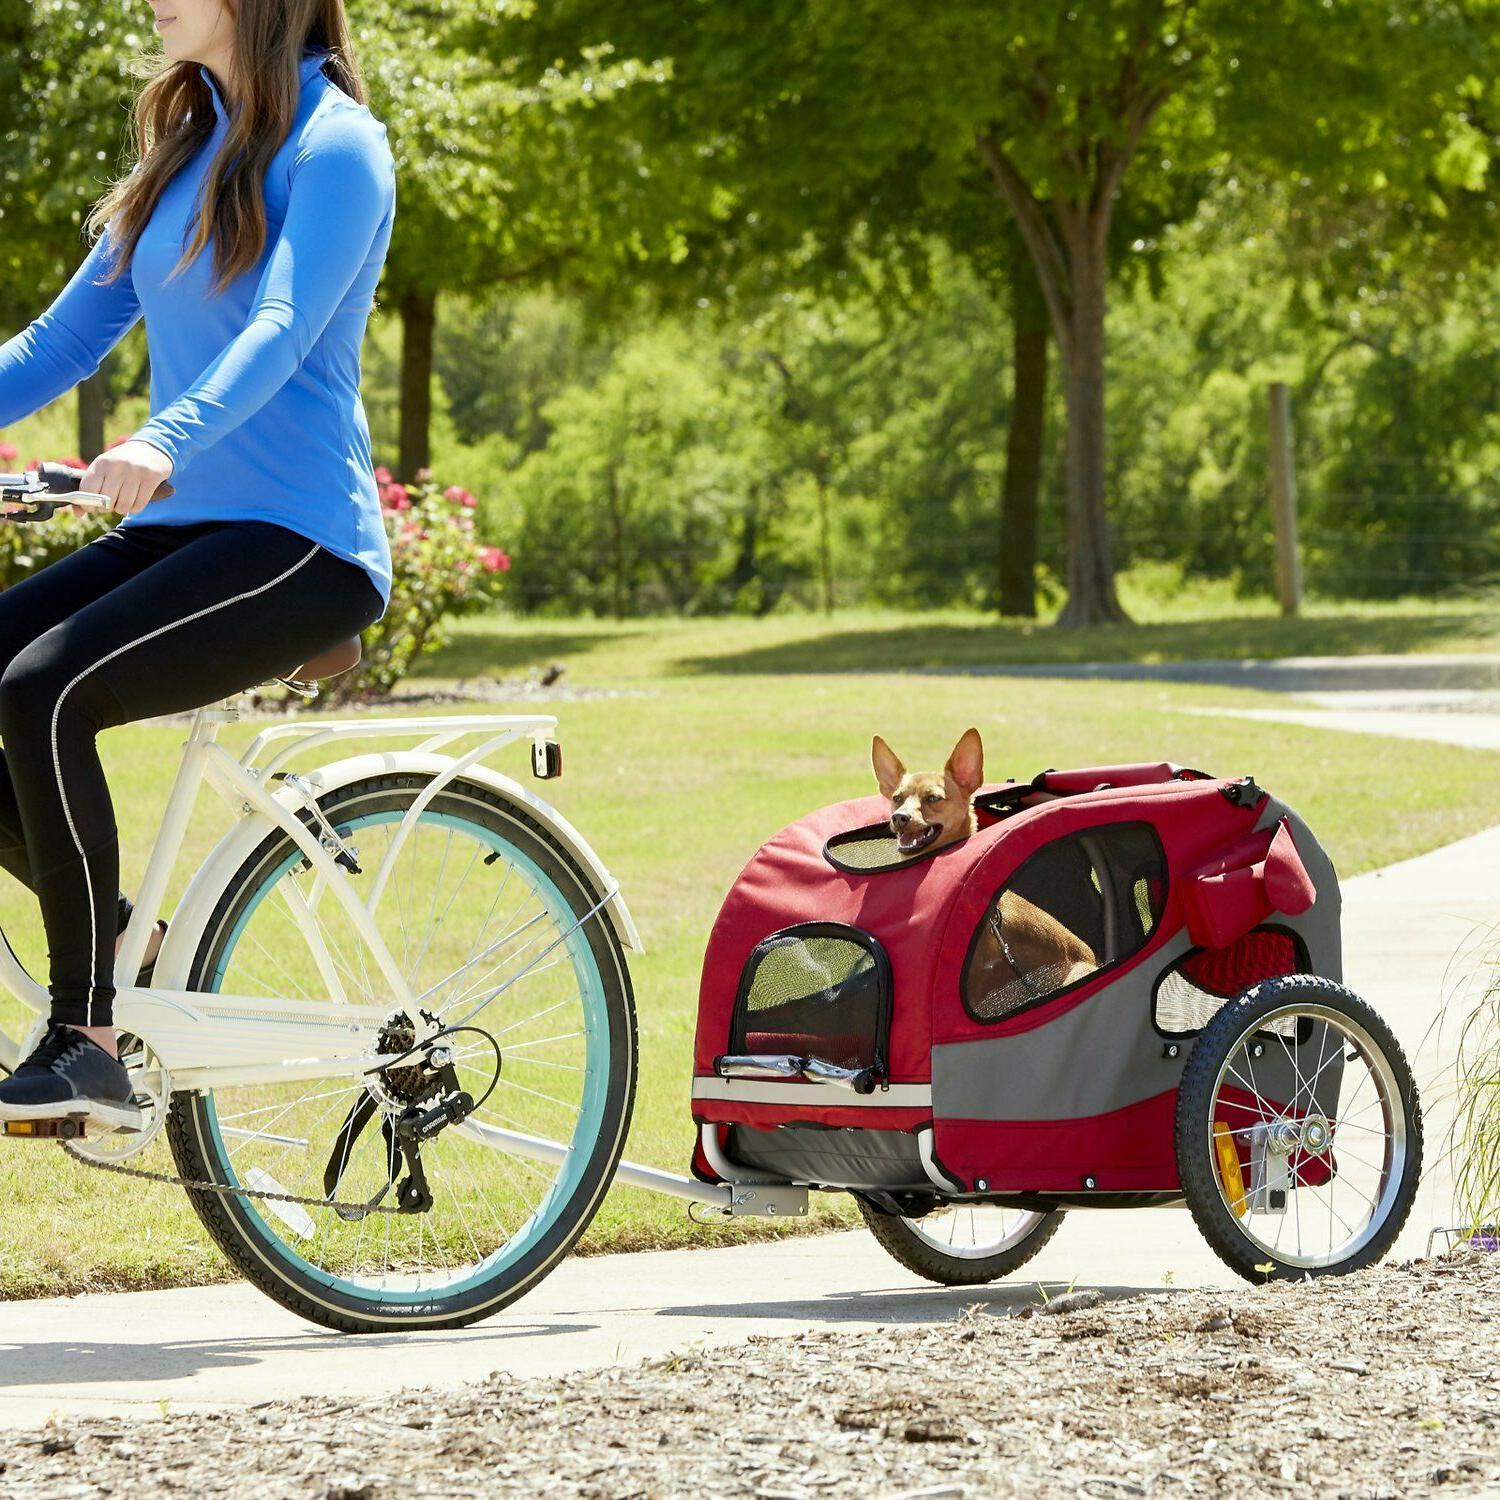 Solvit Aluminum Bike for Dogs Holds Pets Up To 110 lb